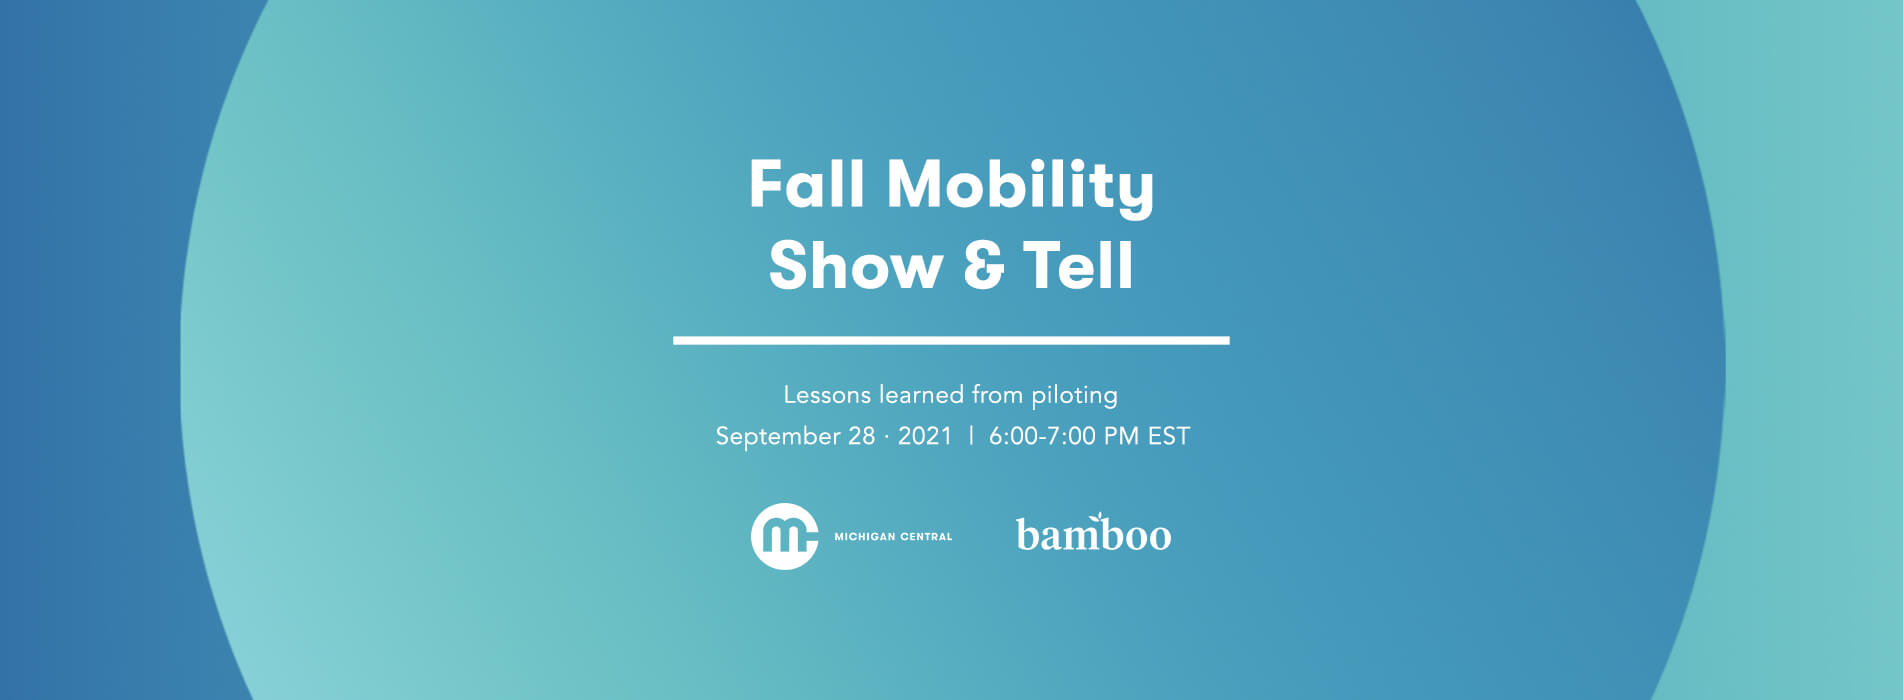 fall mobility show and tell - lessons learned from piloting